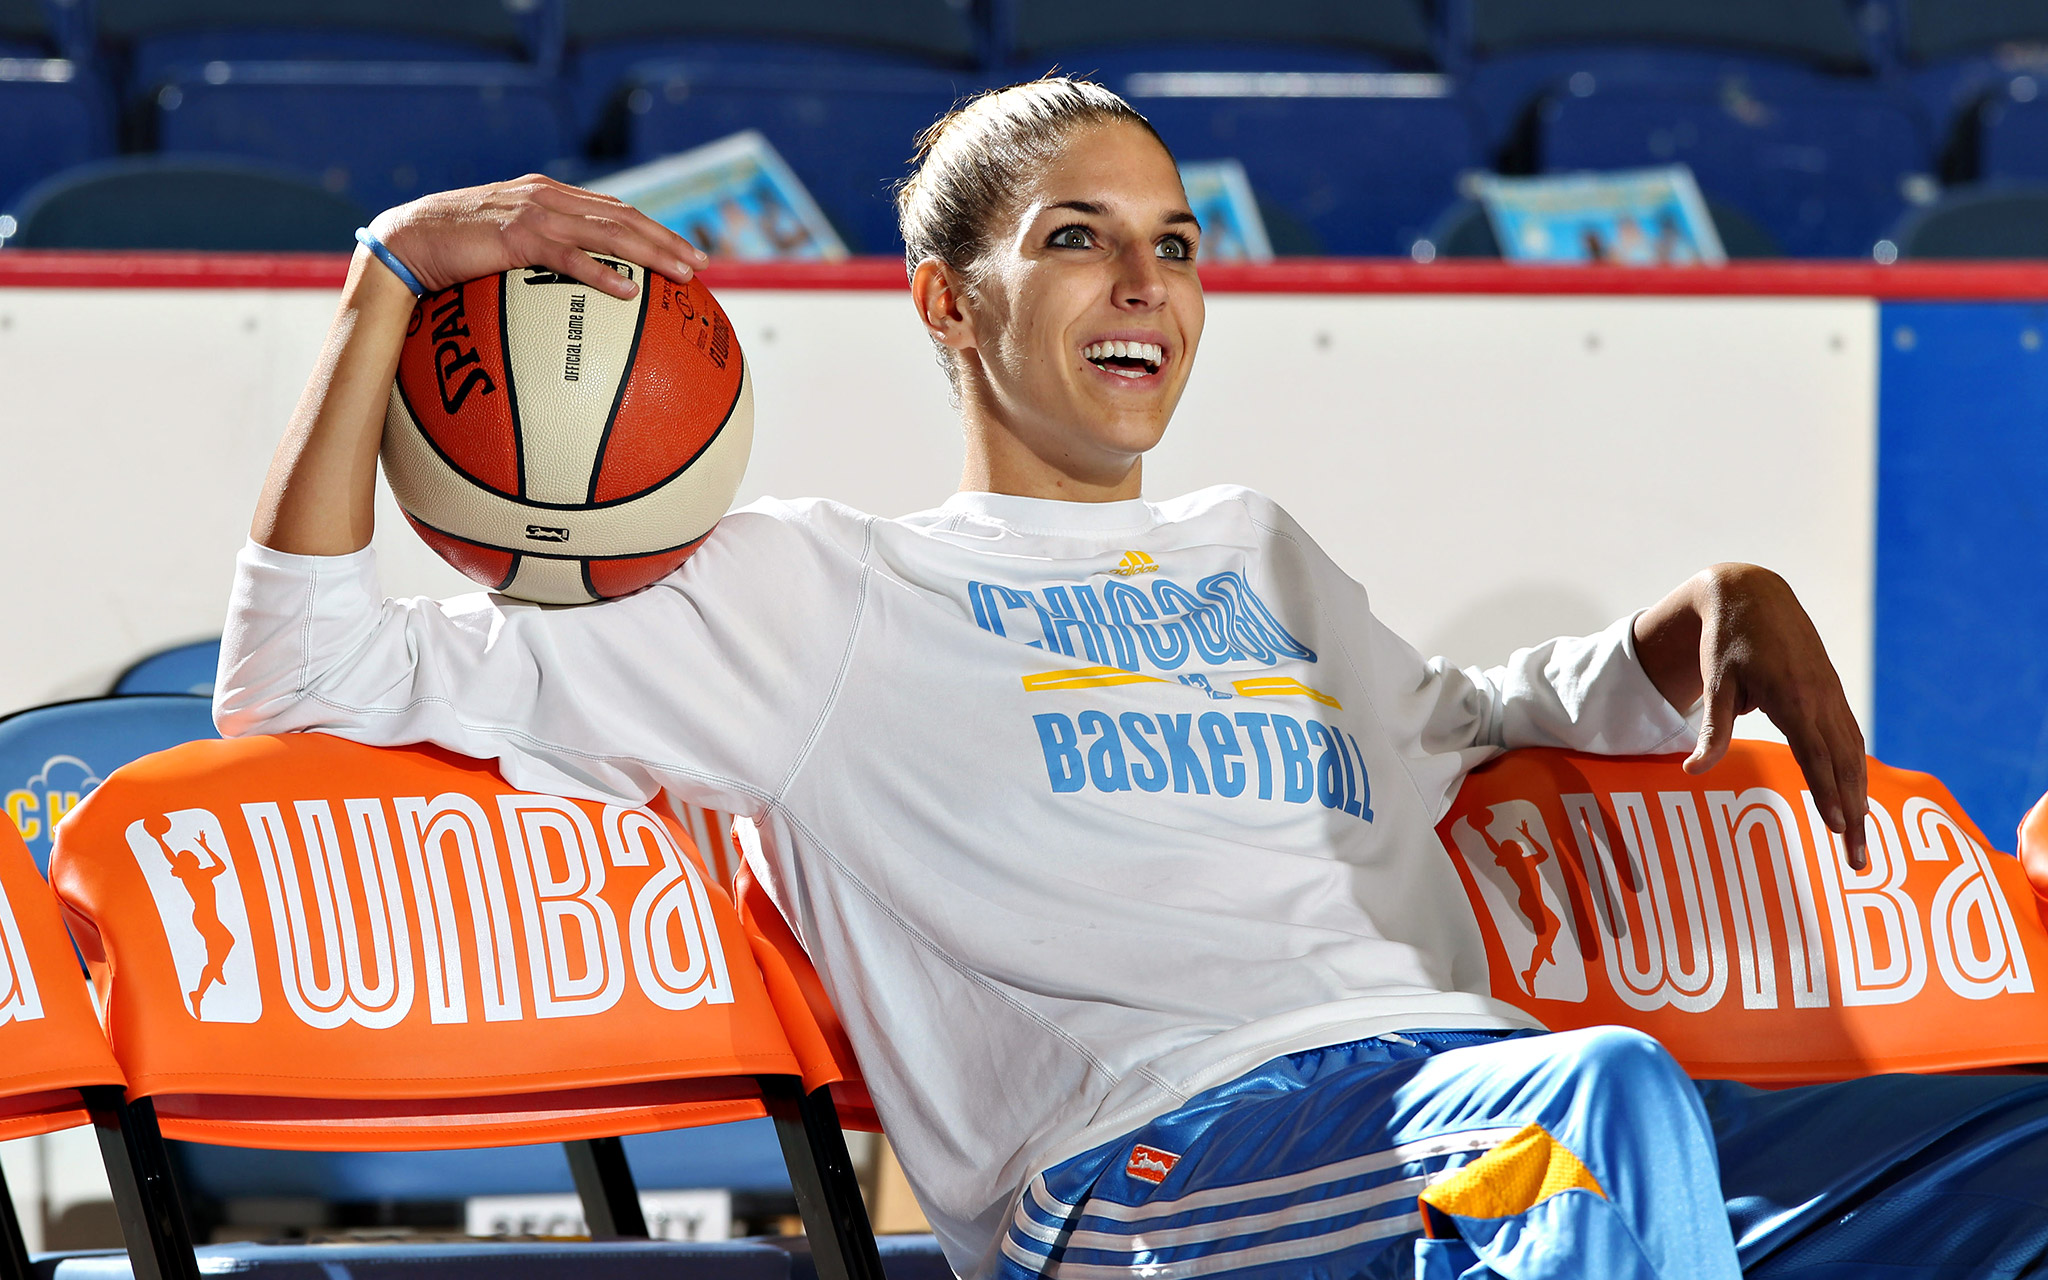 Elena Delle Donne, who swept the rookie of the month awards, says her first season in Chicago has seemed like a dream.